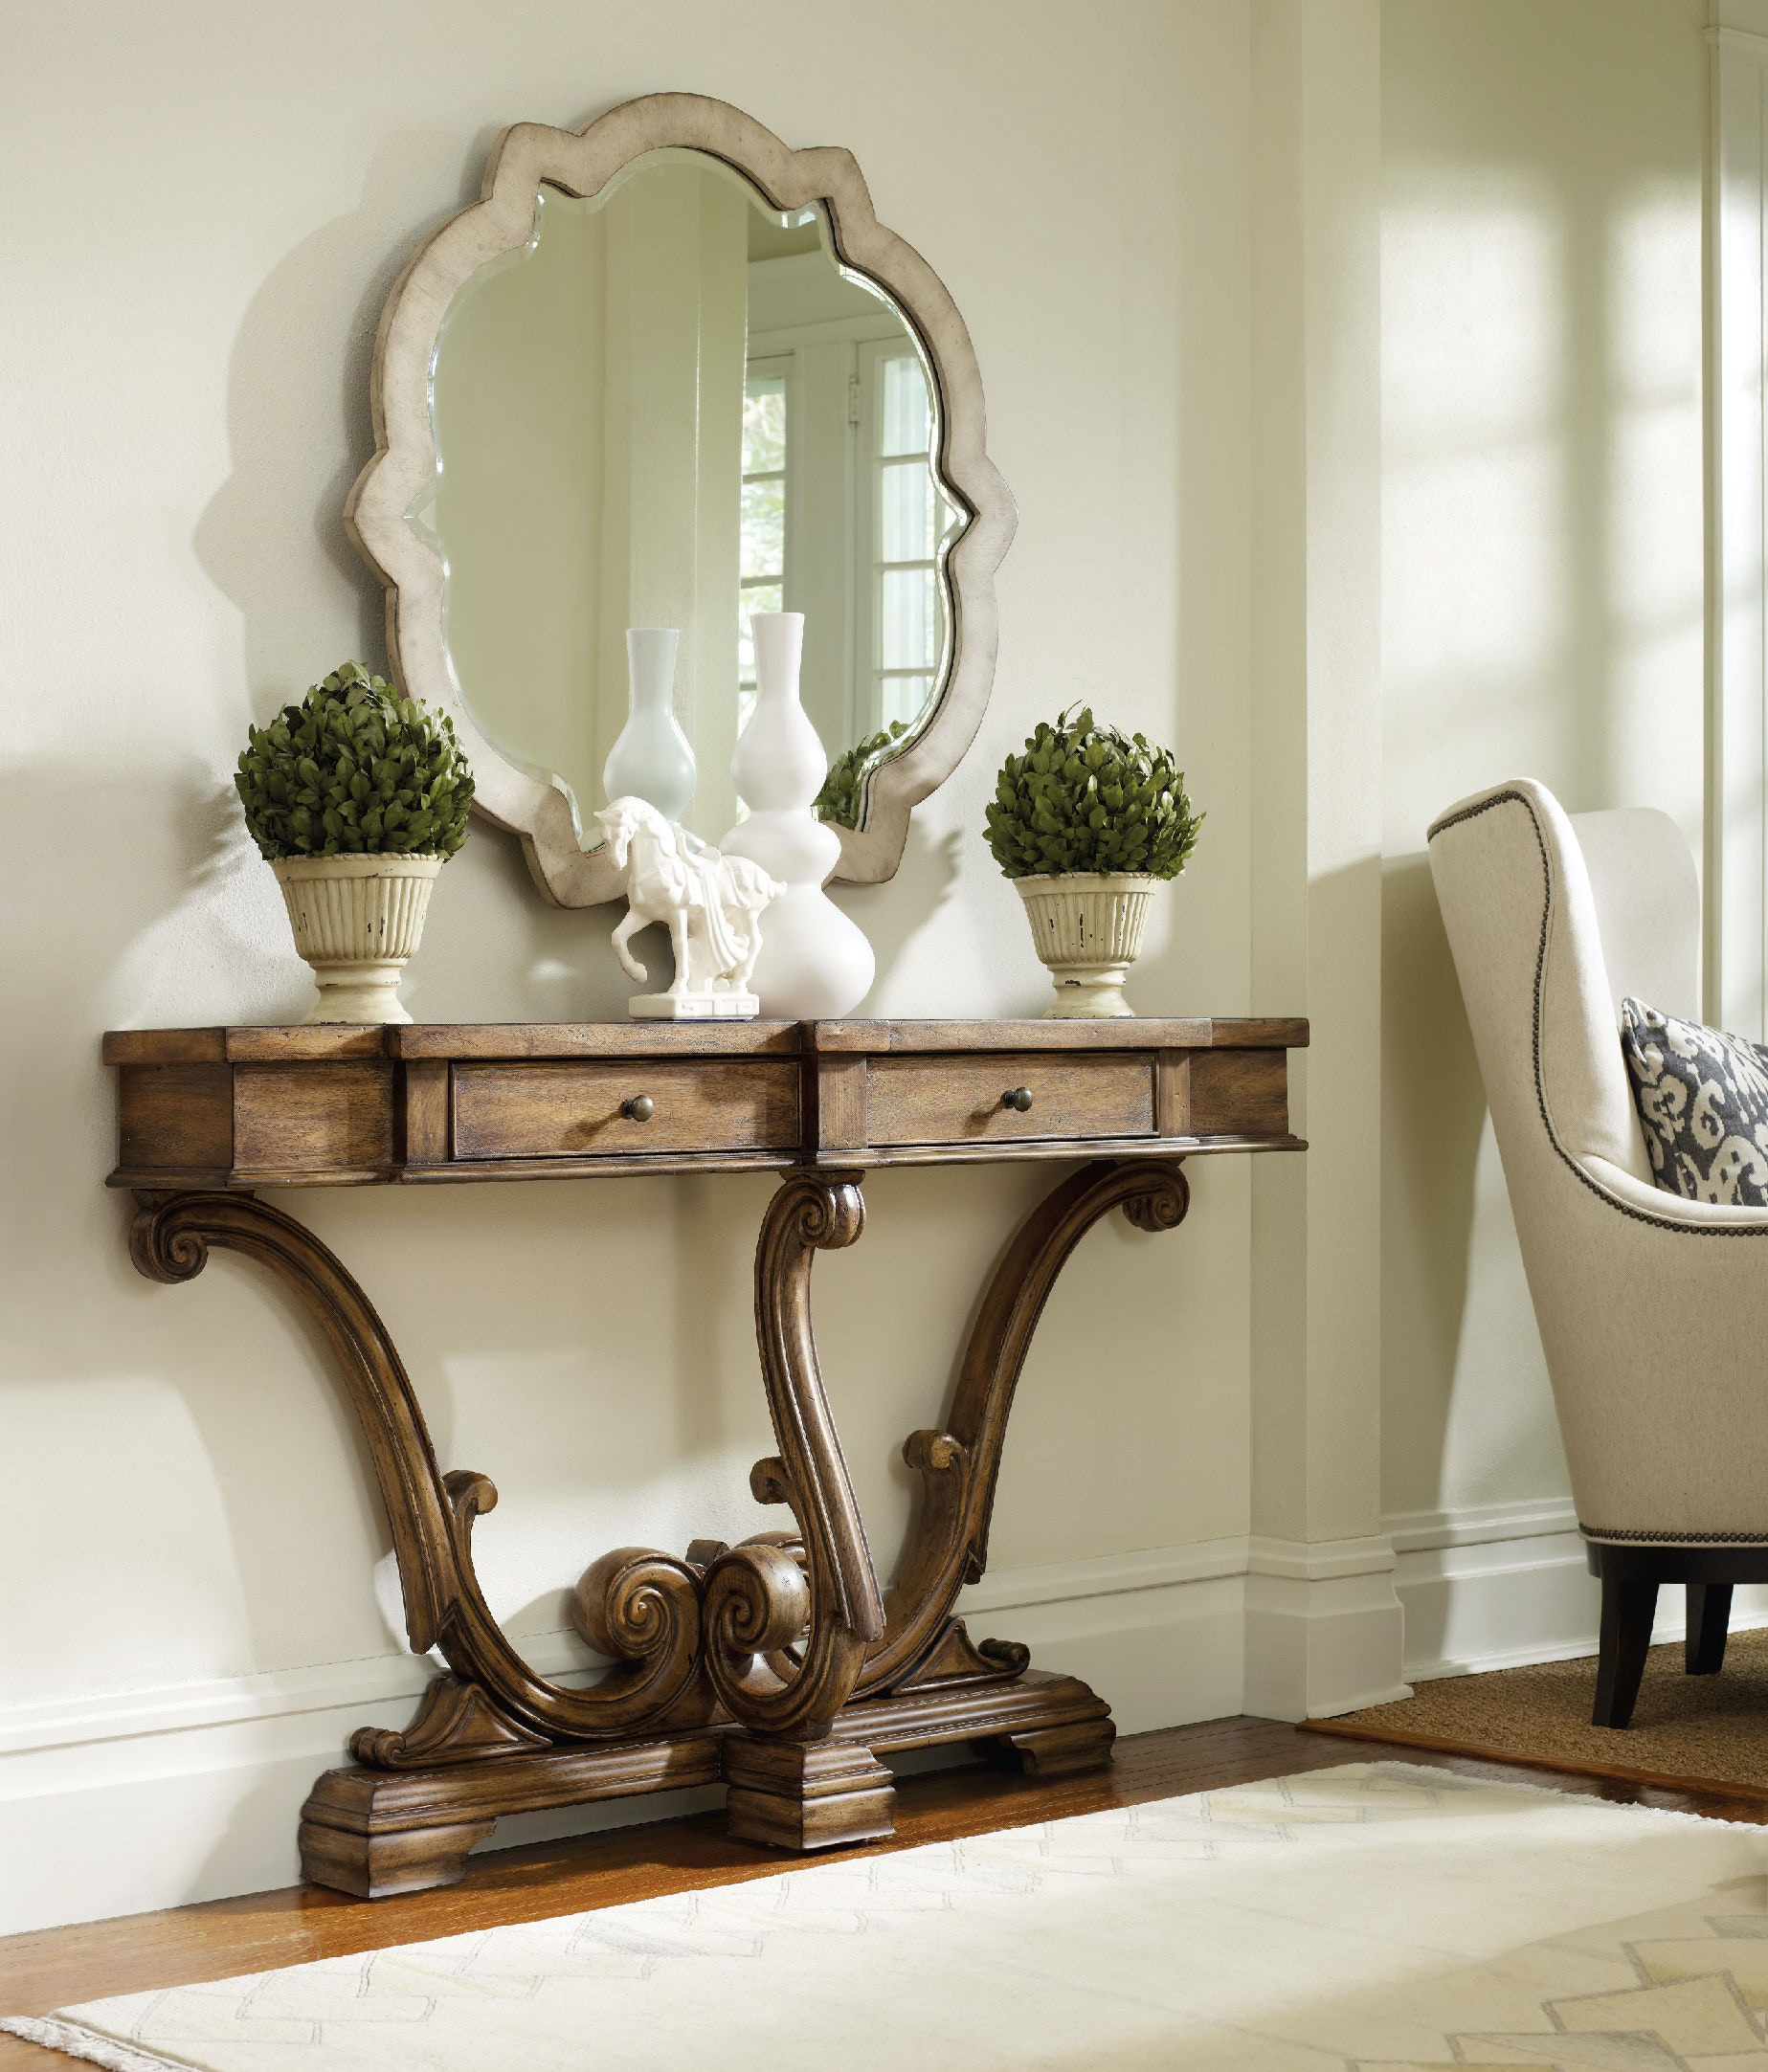 Hooker Furniture Sanctuary Thin Console Amber Sands 3022 85001